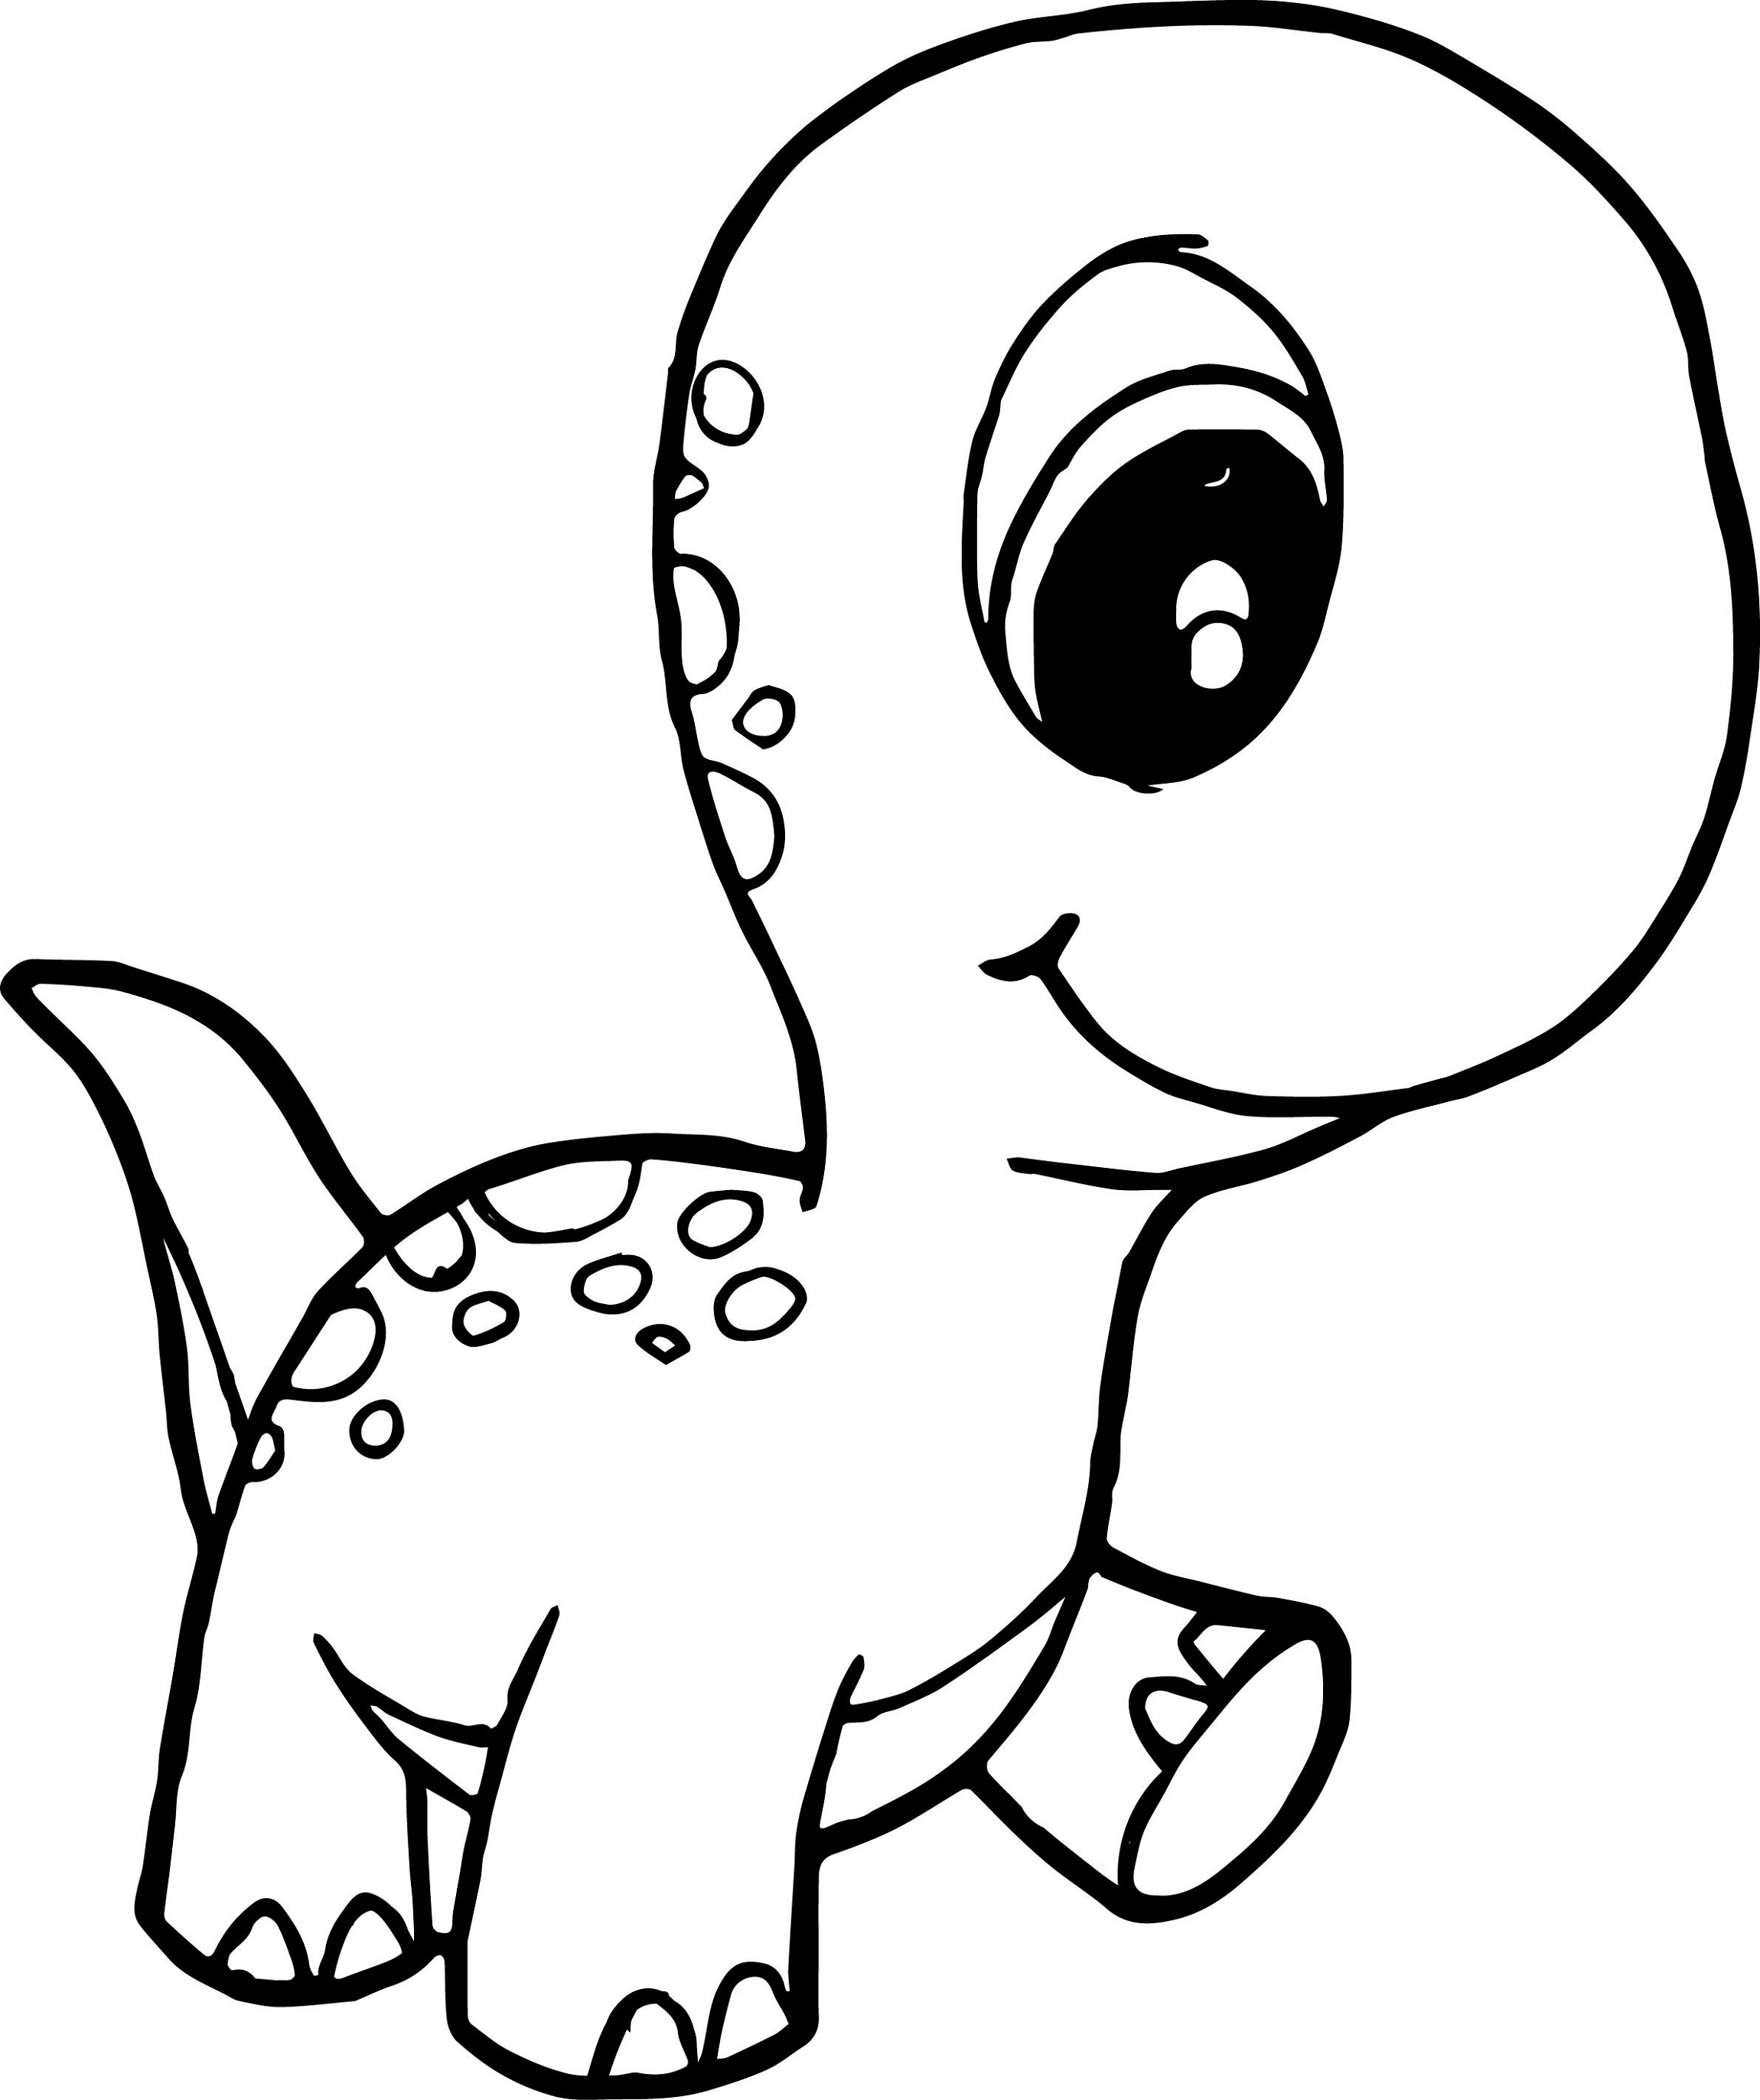 dinasour coloring pages free printable dinosaur coloring pages for kids dinasour coloring pages